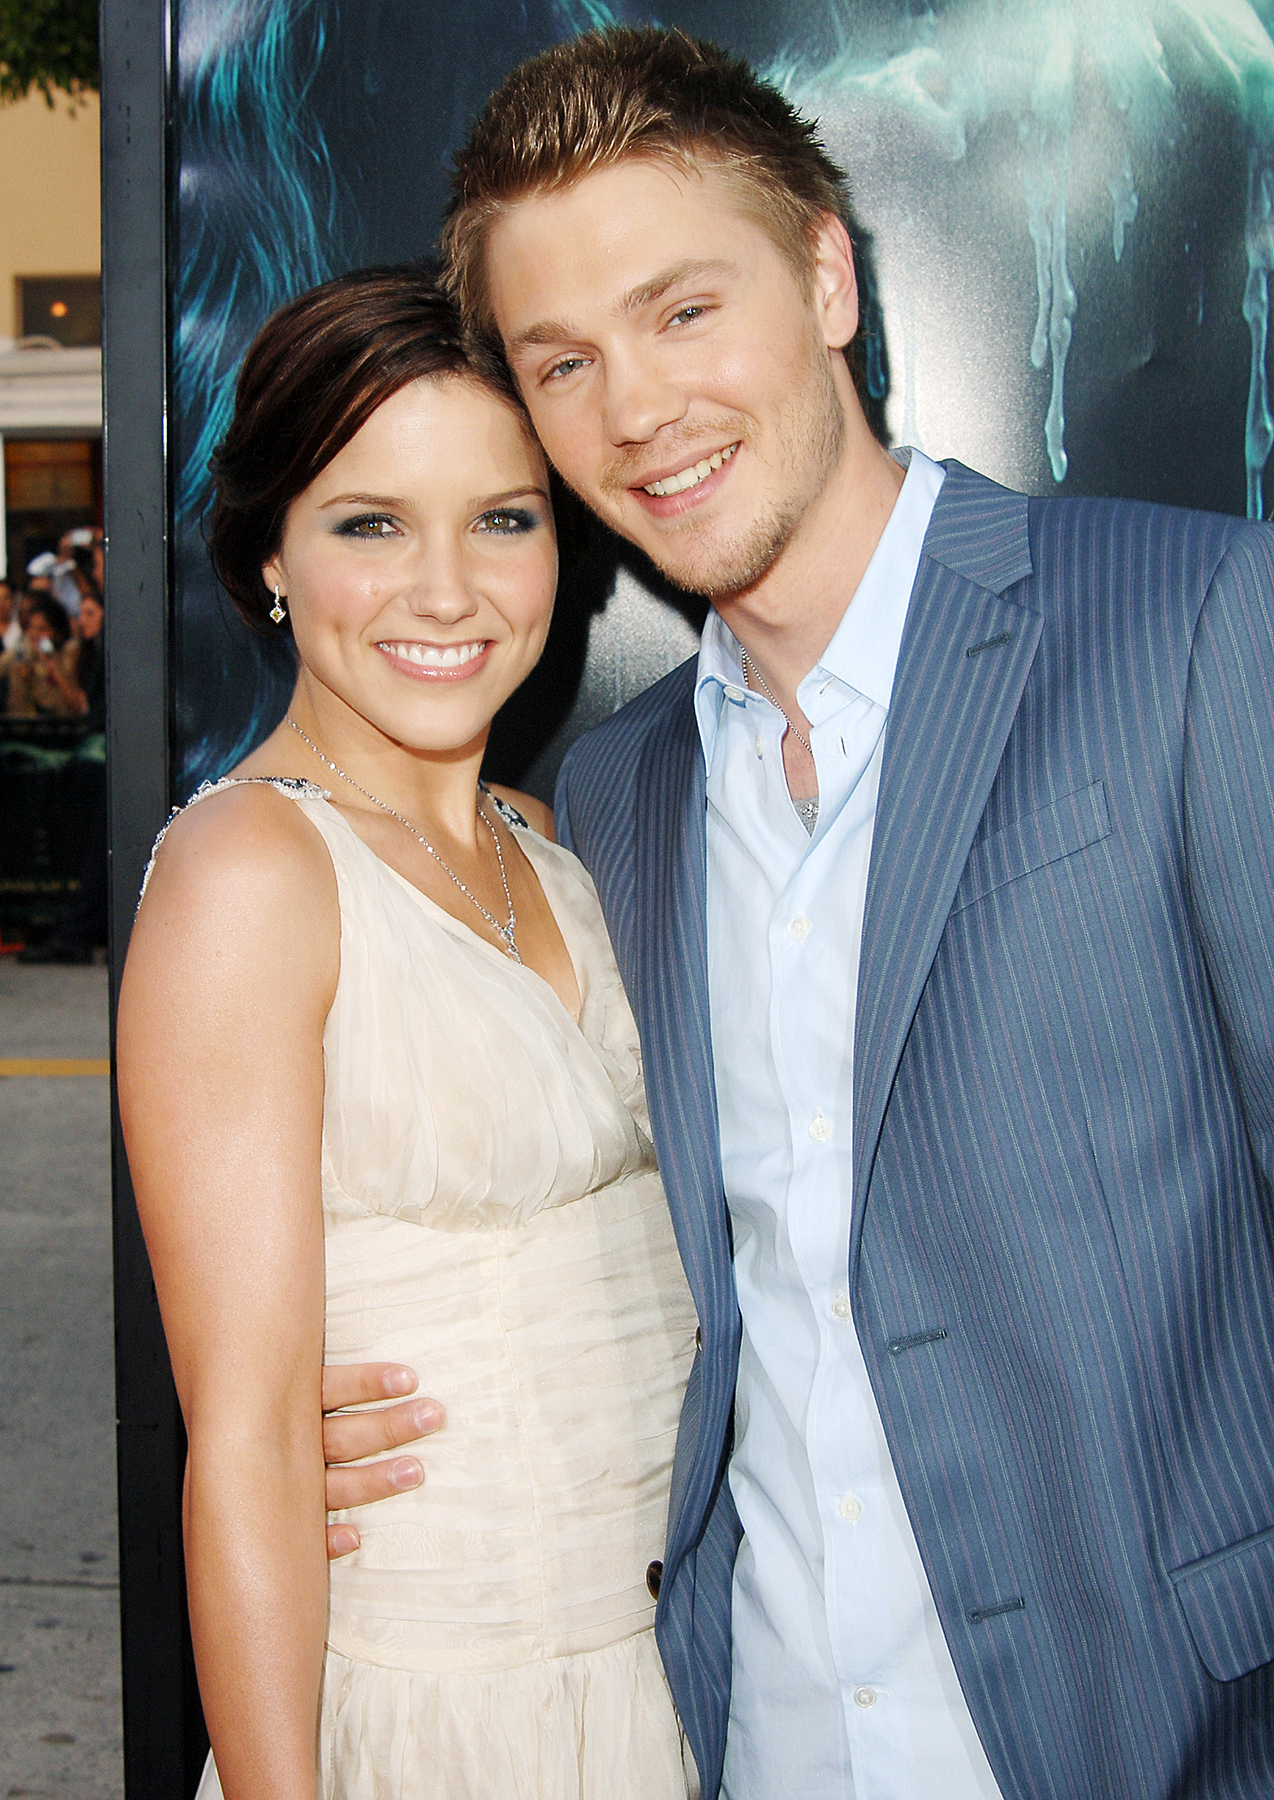 One tree hill actors dating